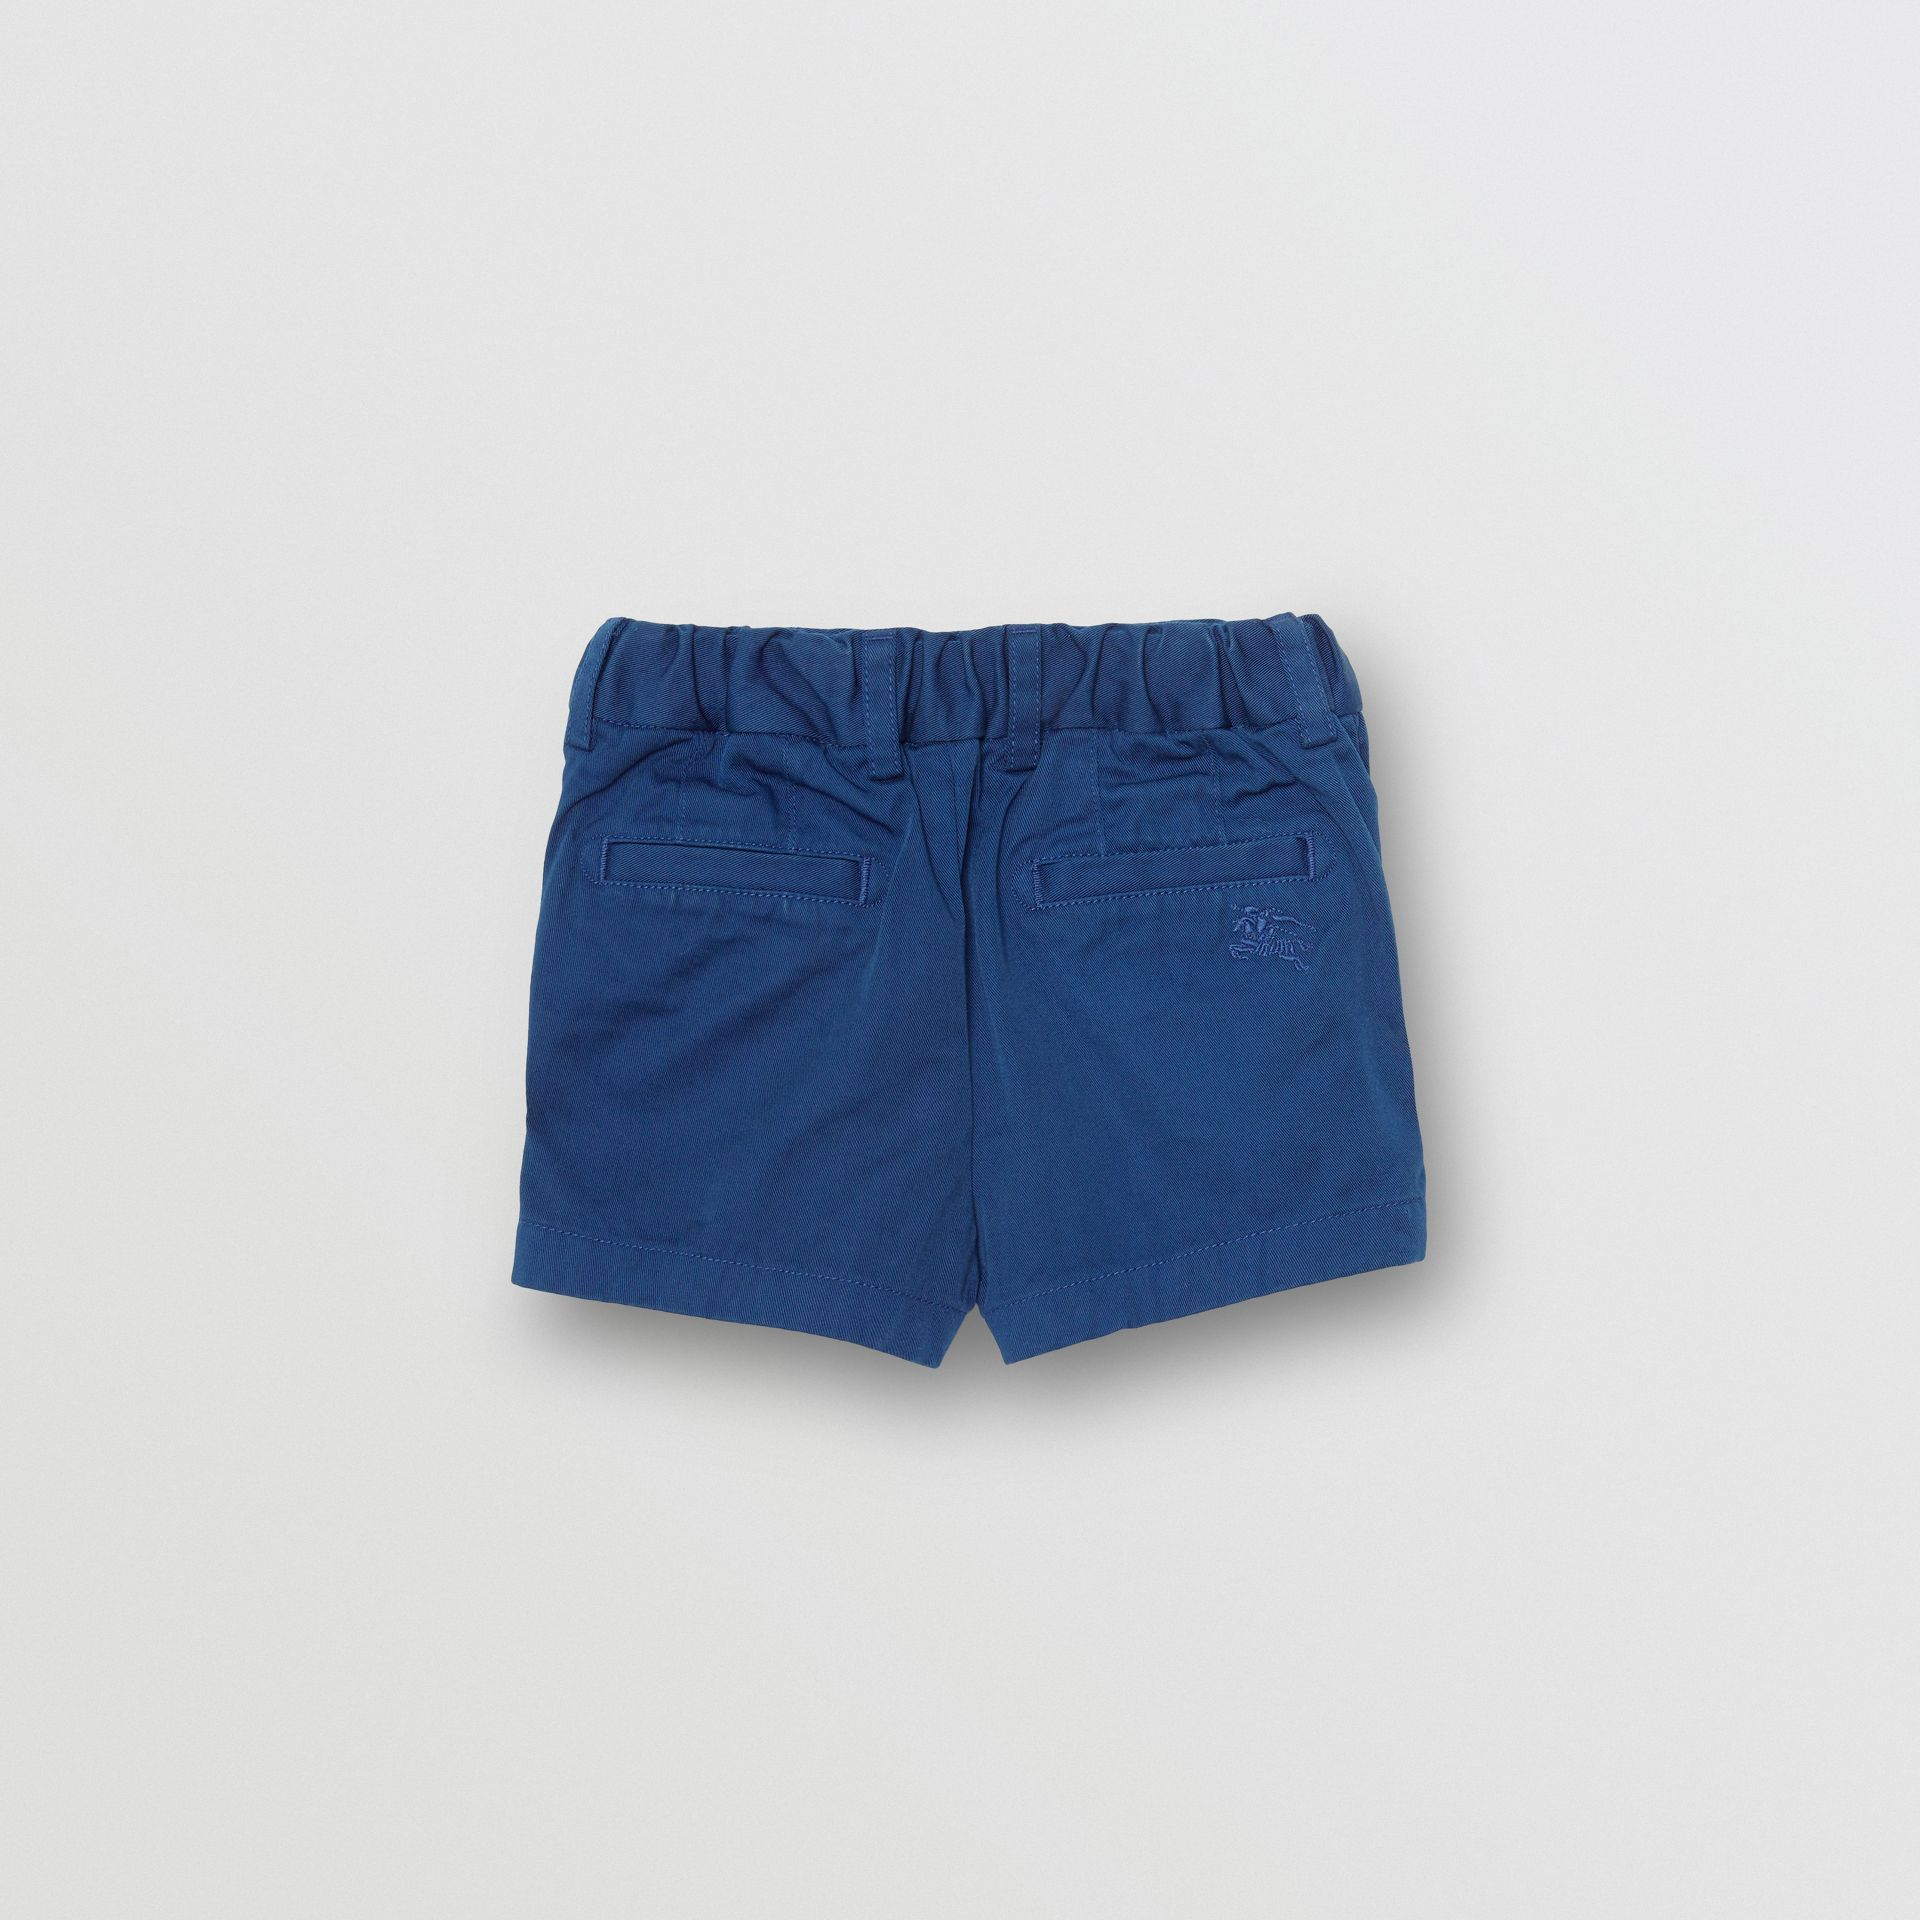 Cotton Chino Shorts in Bright Navy - Children | Burberry - gallery image 3